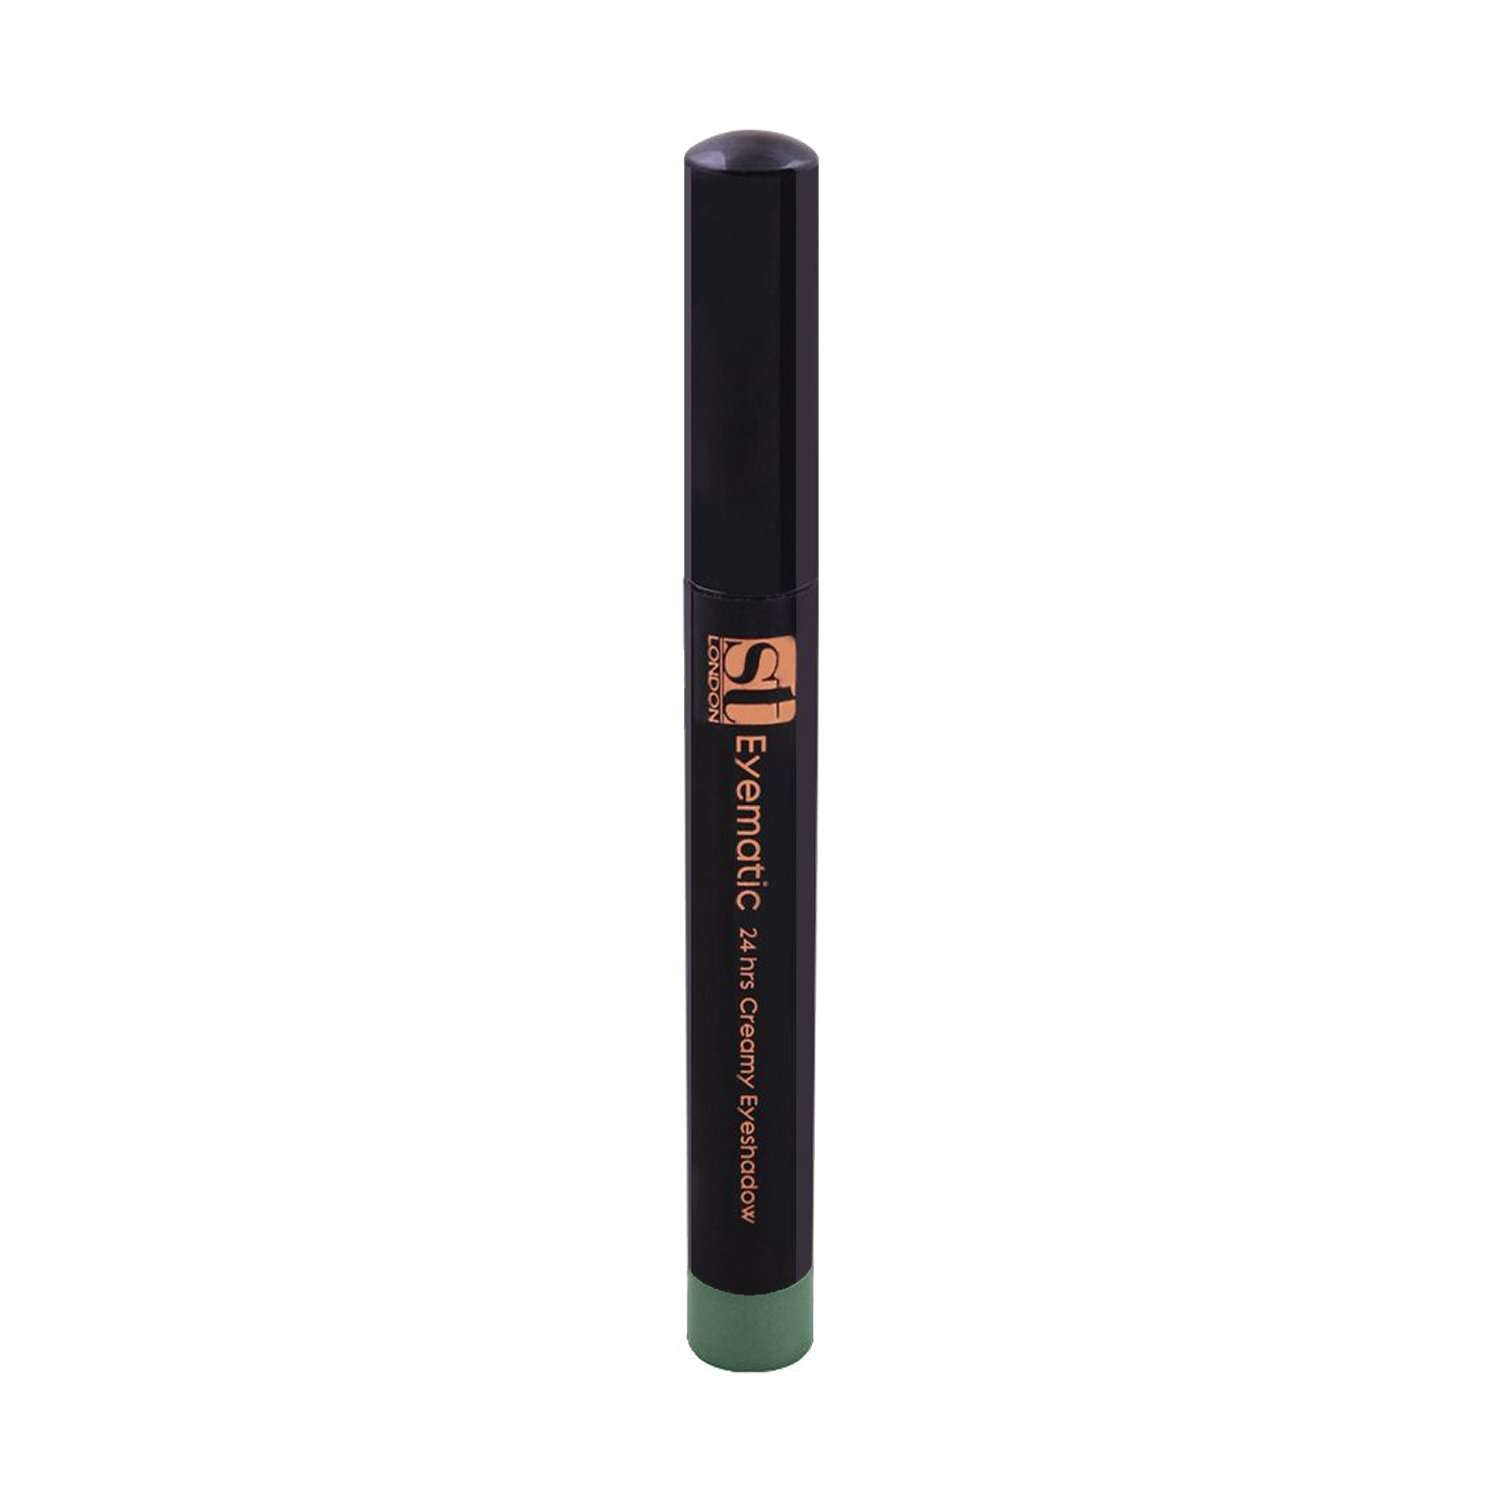 Eyematic 24hrs Creamy Eye Shadow - Matte Olive